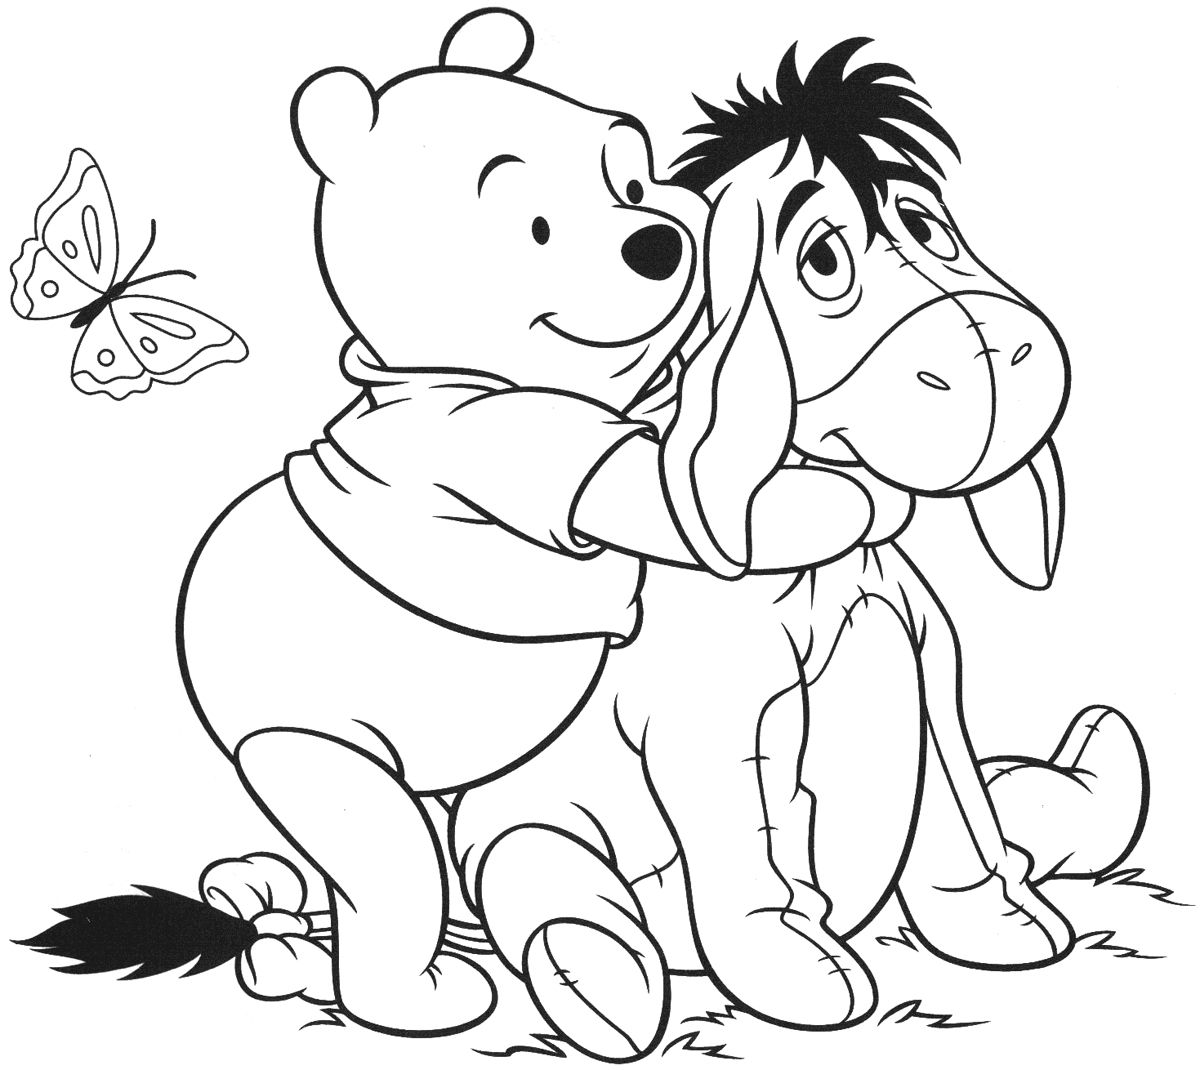 Pin By Totally Ty On Cameo Silhouet Bear Coloring Pages Disney Coloring Pages Coloring Pages